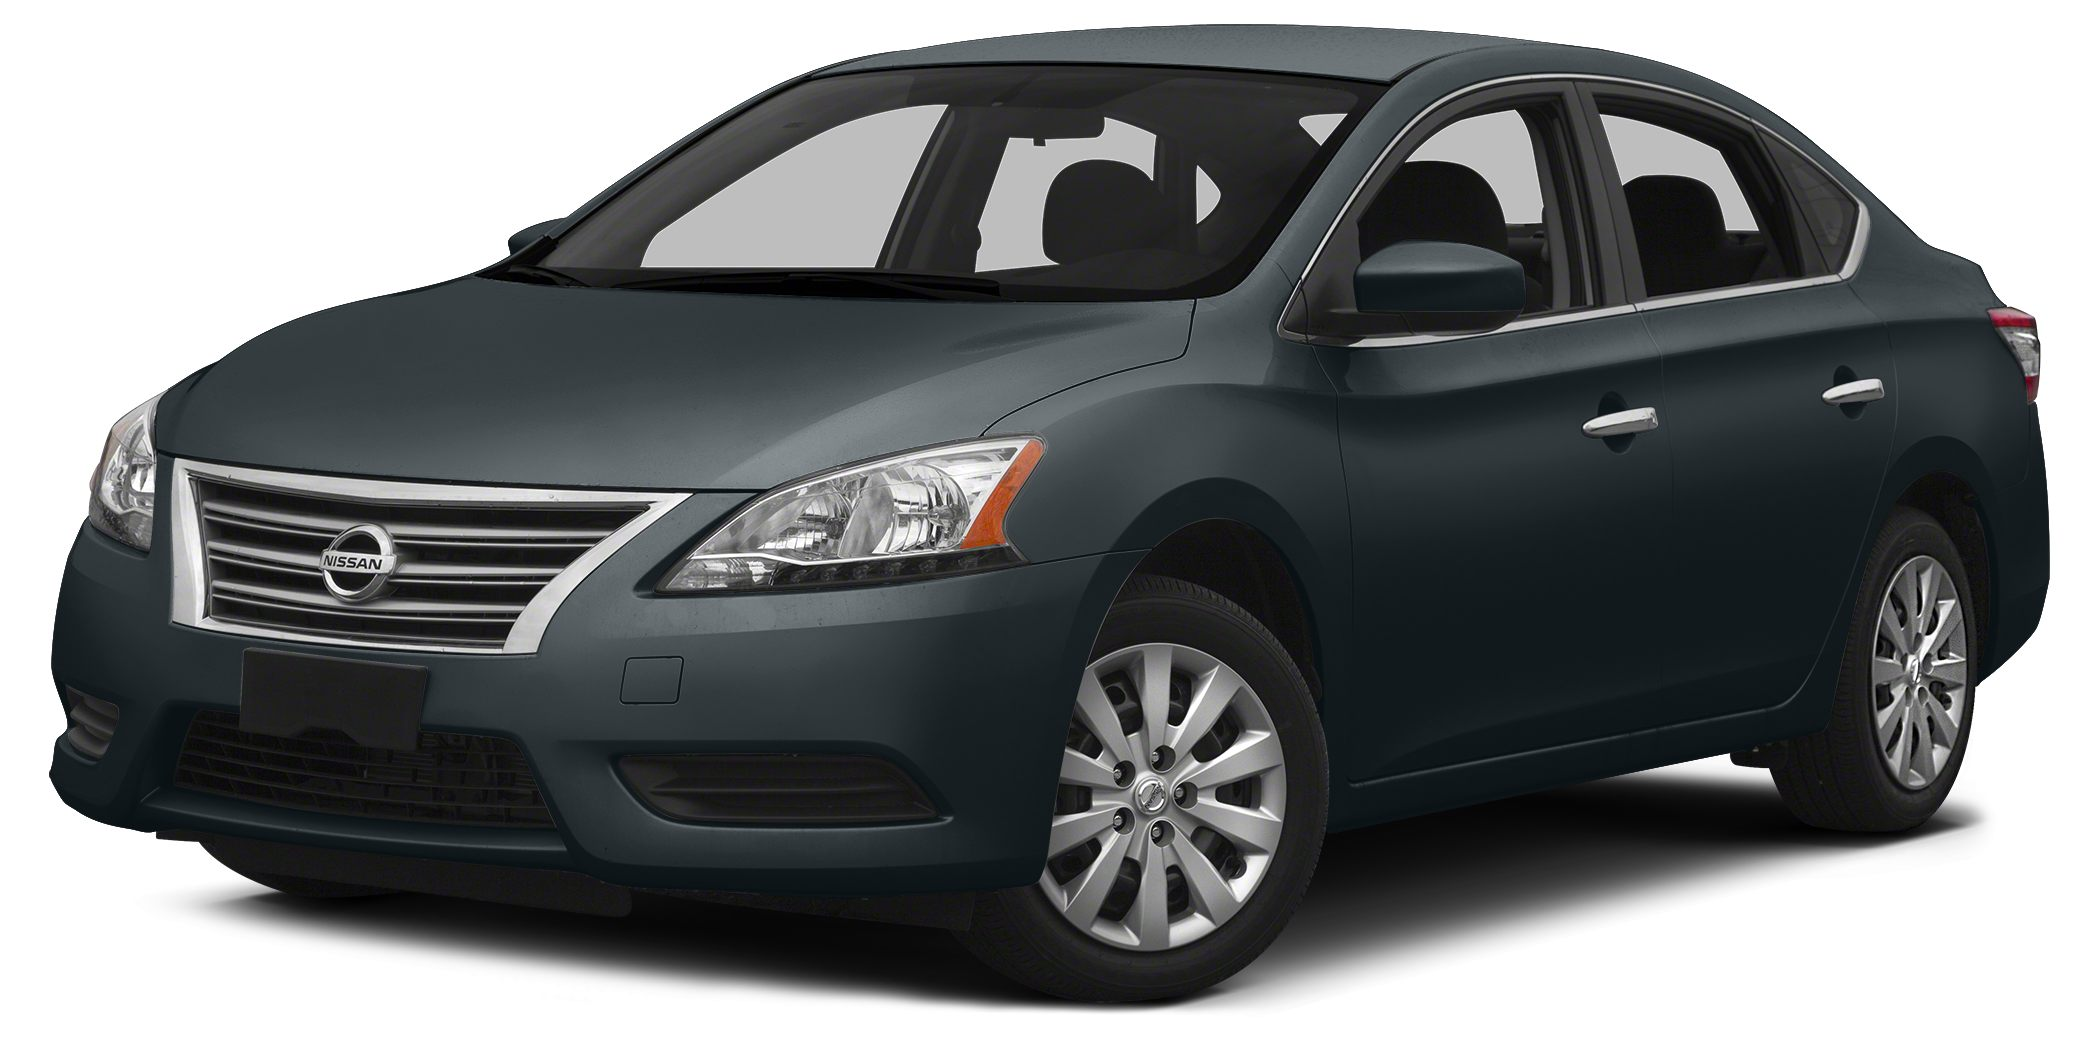 2013 Nissan Sentra SV Miles 37899Color Graphite Blue Stock K16273A VIN 3N1AB7APXDL619137